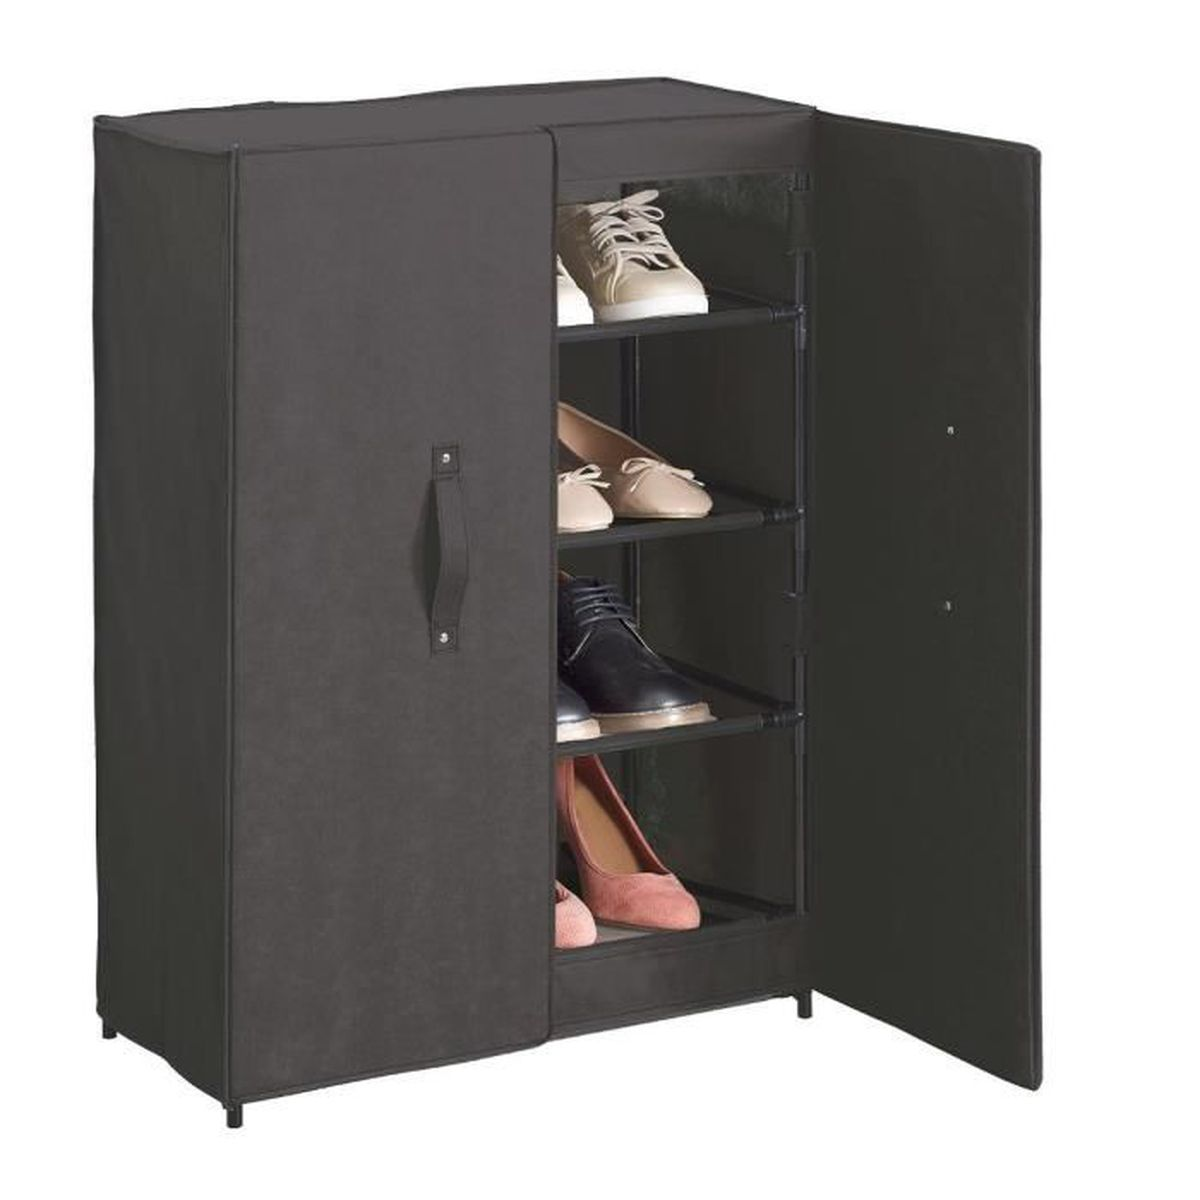 armoire a chaussures 2 portes achat vente pas cher. Black Bedroom Furniture Sets. Home Design Ideas